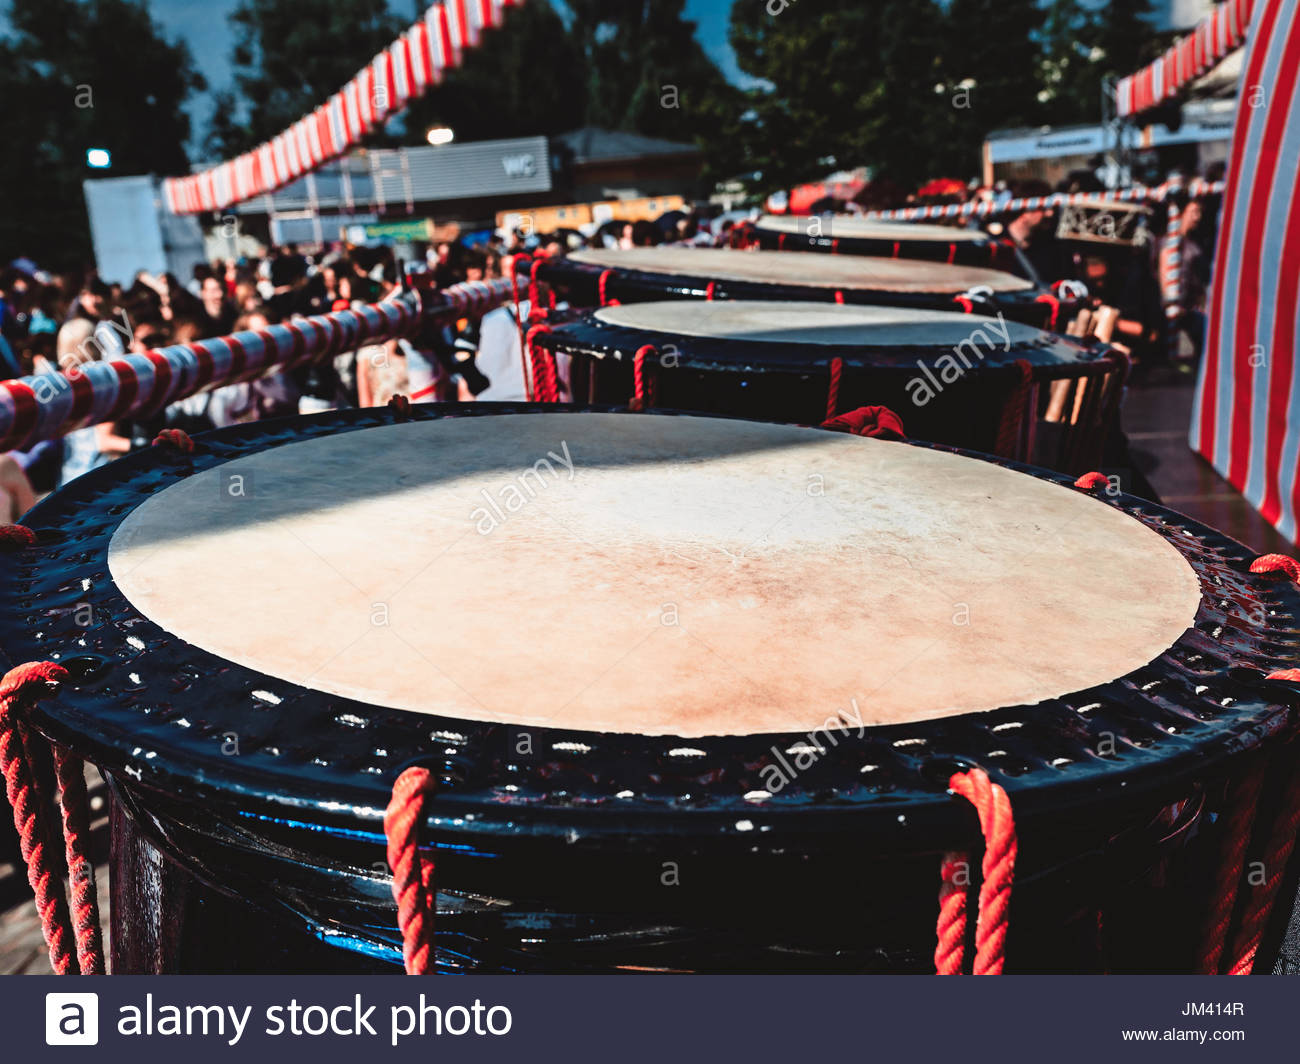 Taiko drums o kedo on scene background Musical instrument of Asia 1300x1064